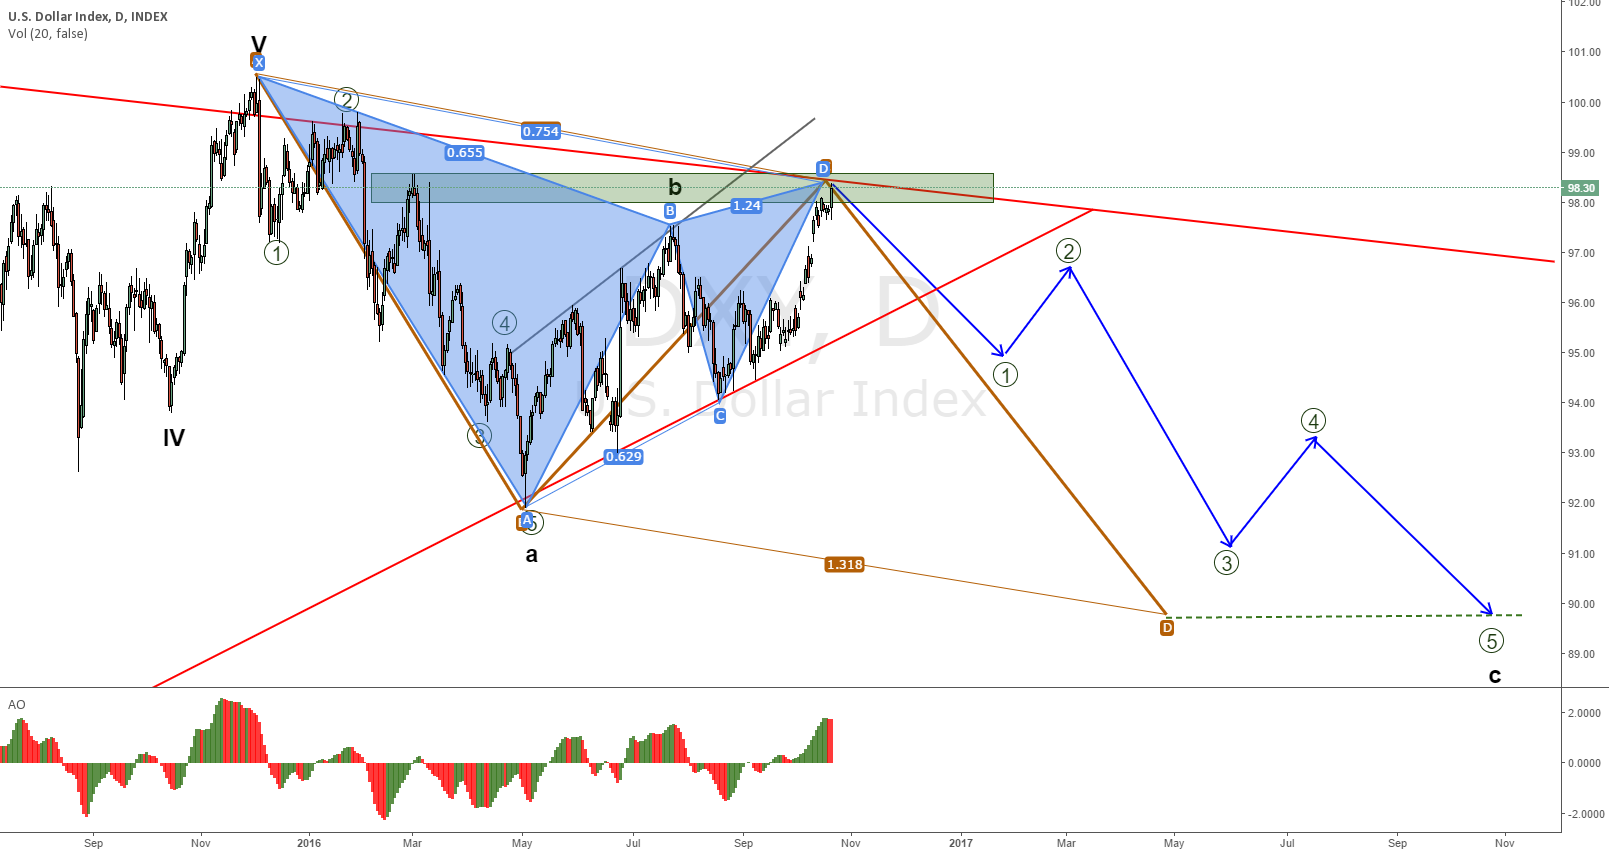 DXI Bearish Gartley price at PRZ